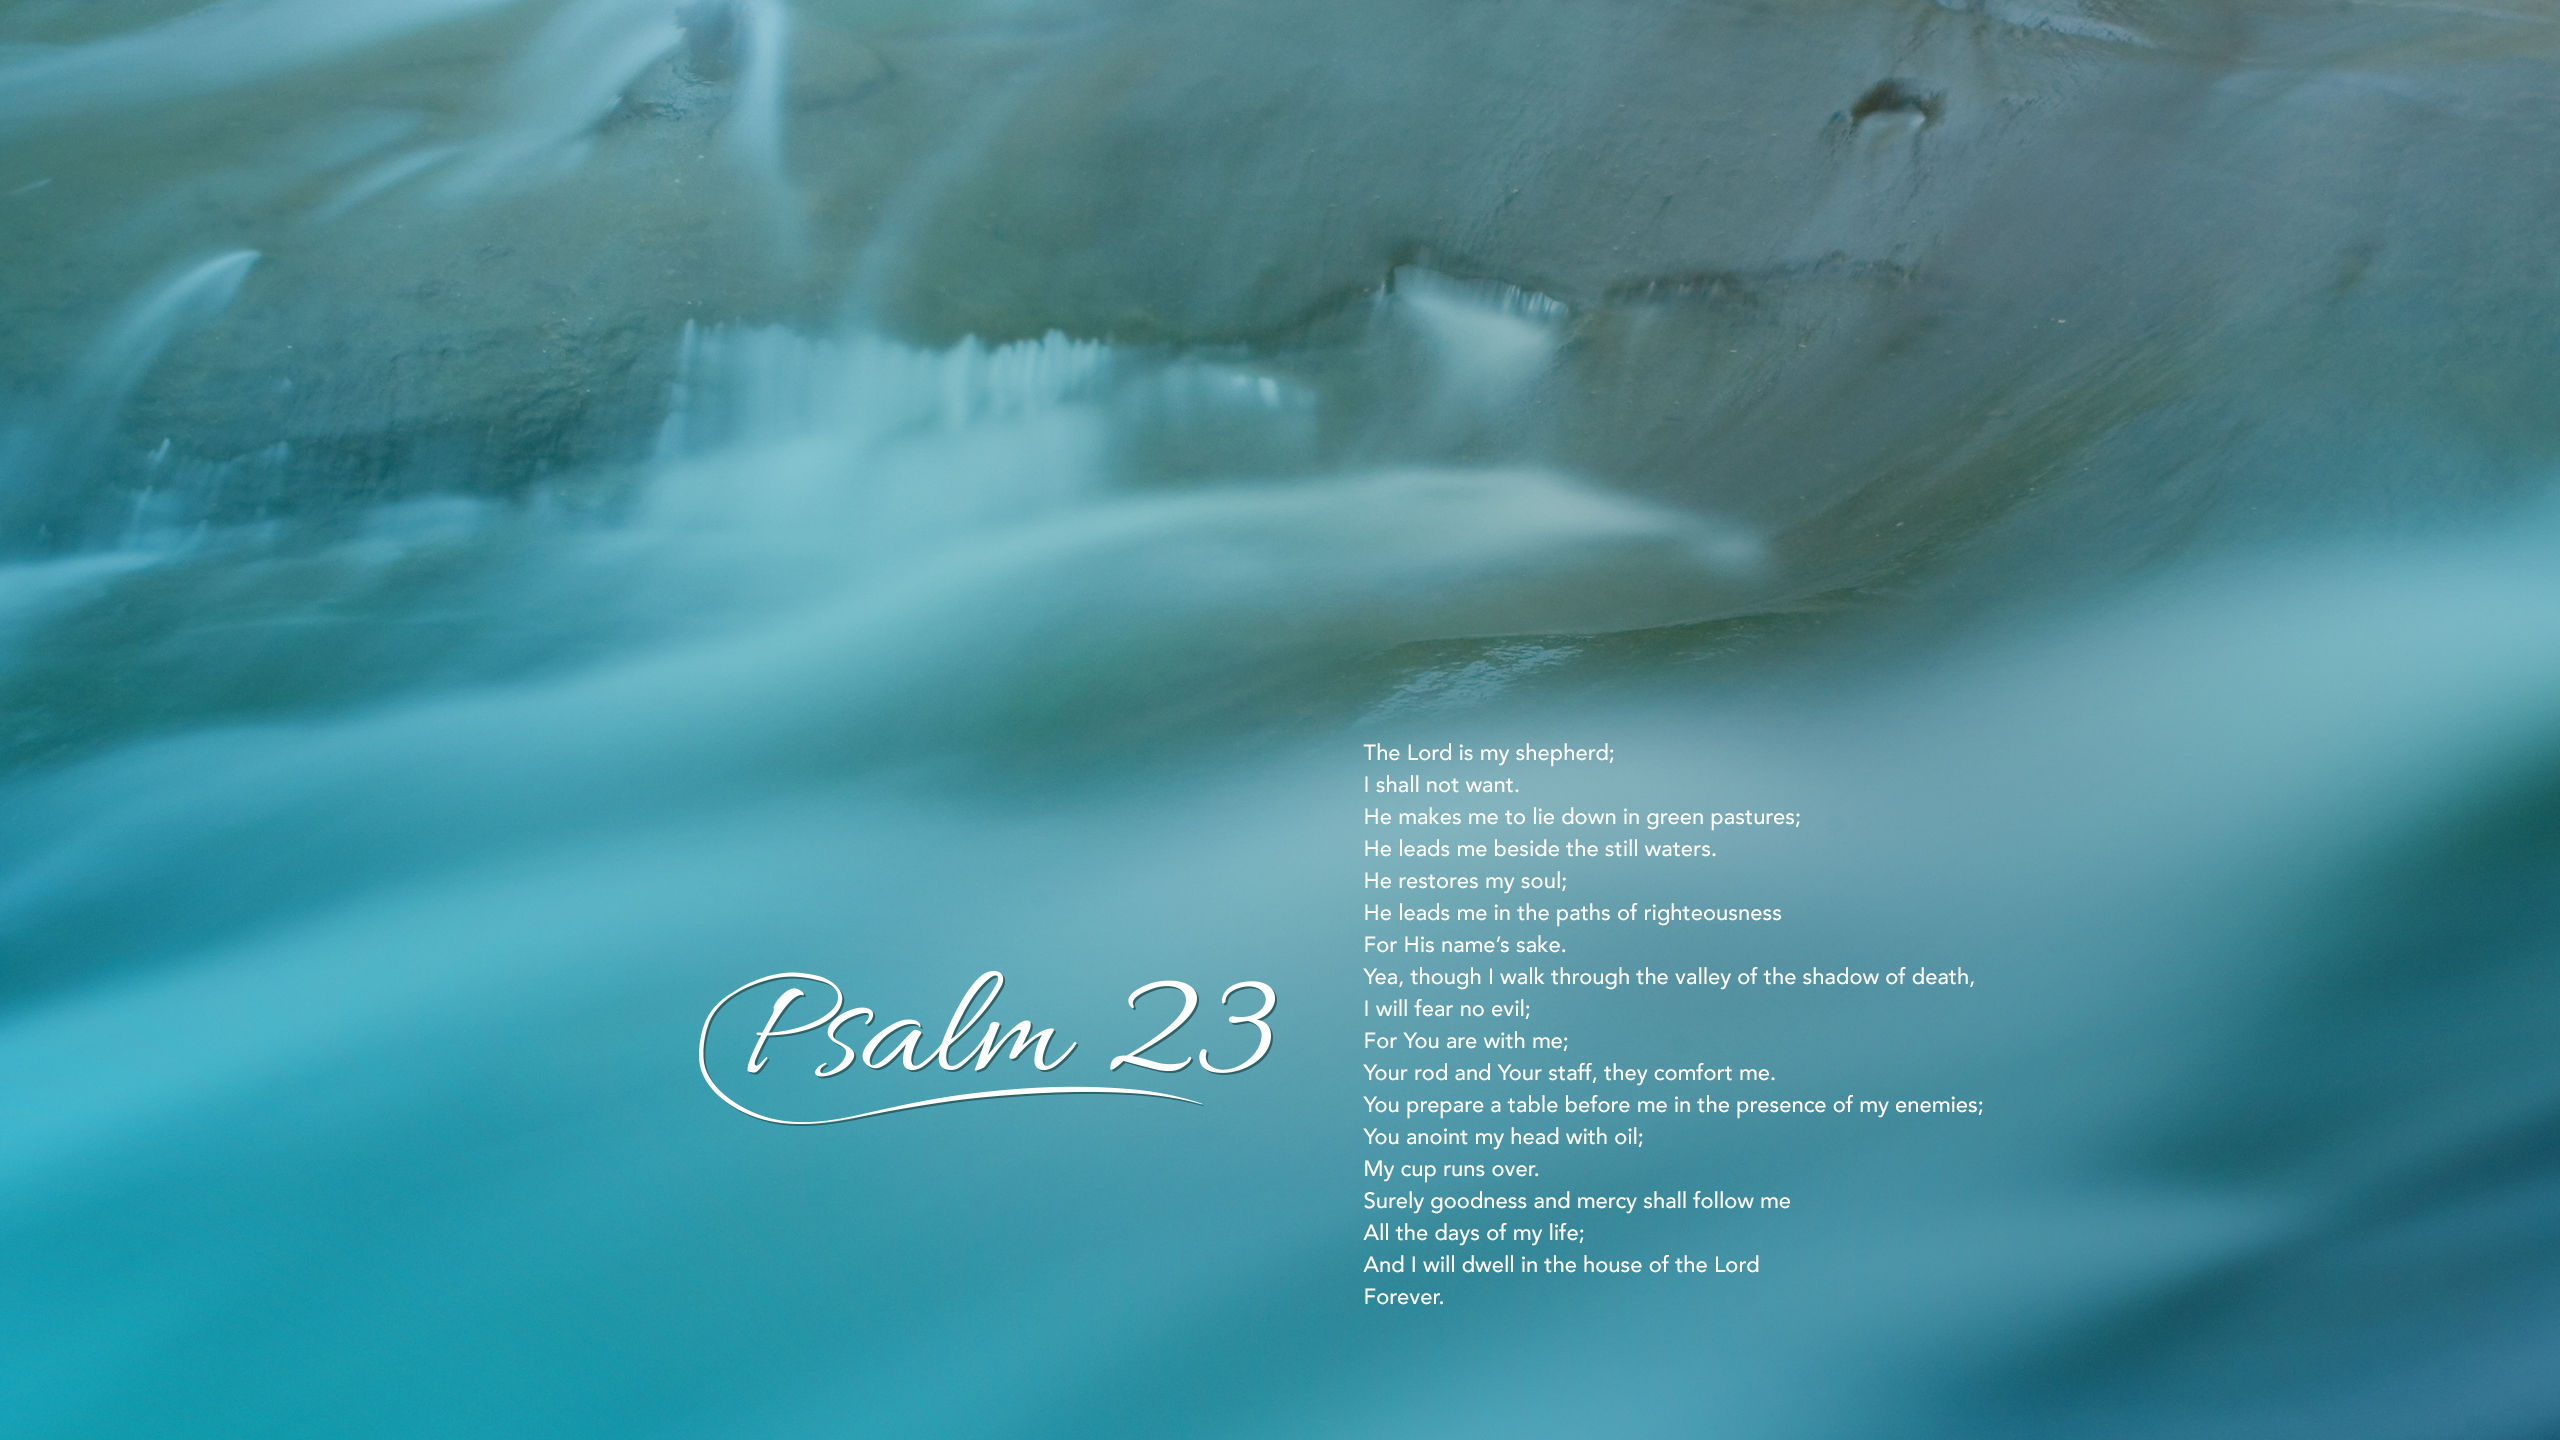 Psalm 23 wallpaper   1230067 2560x1440